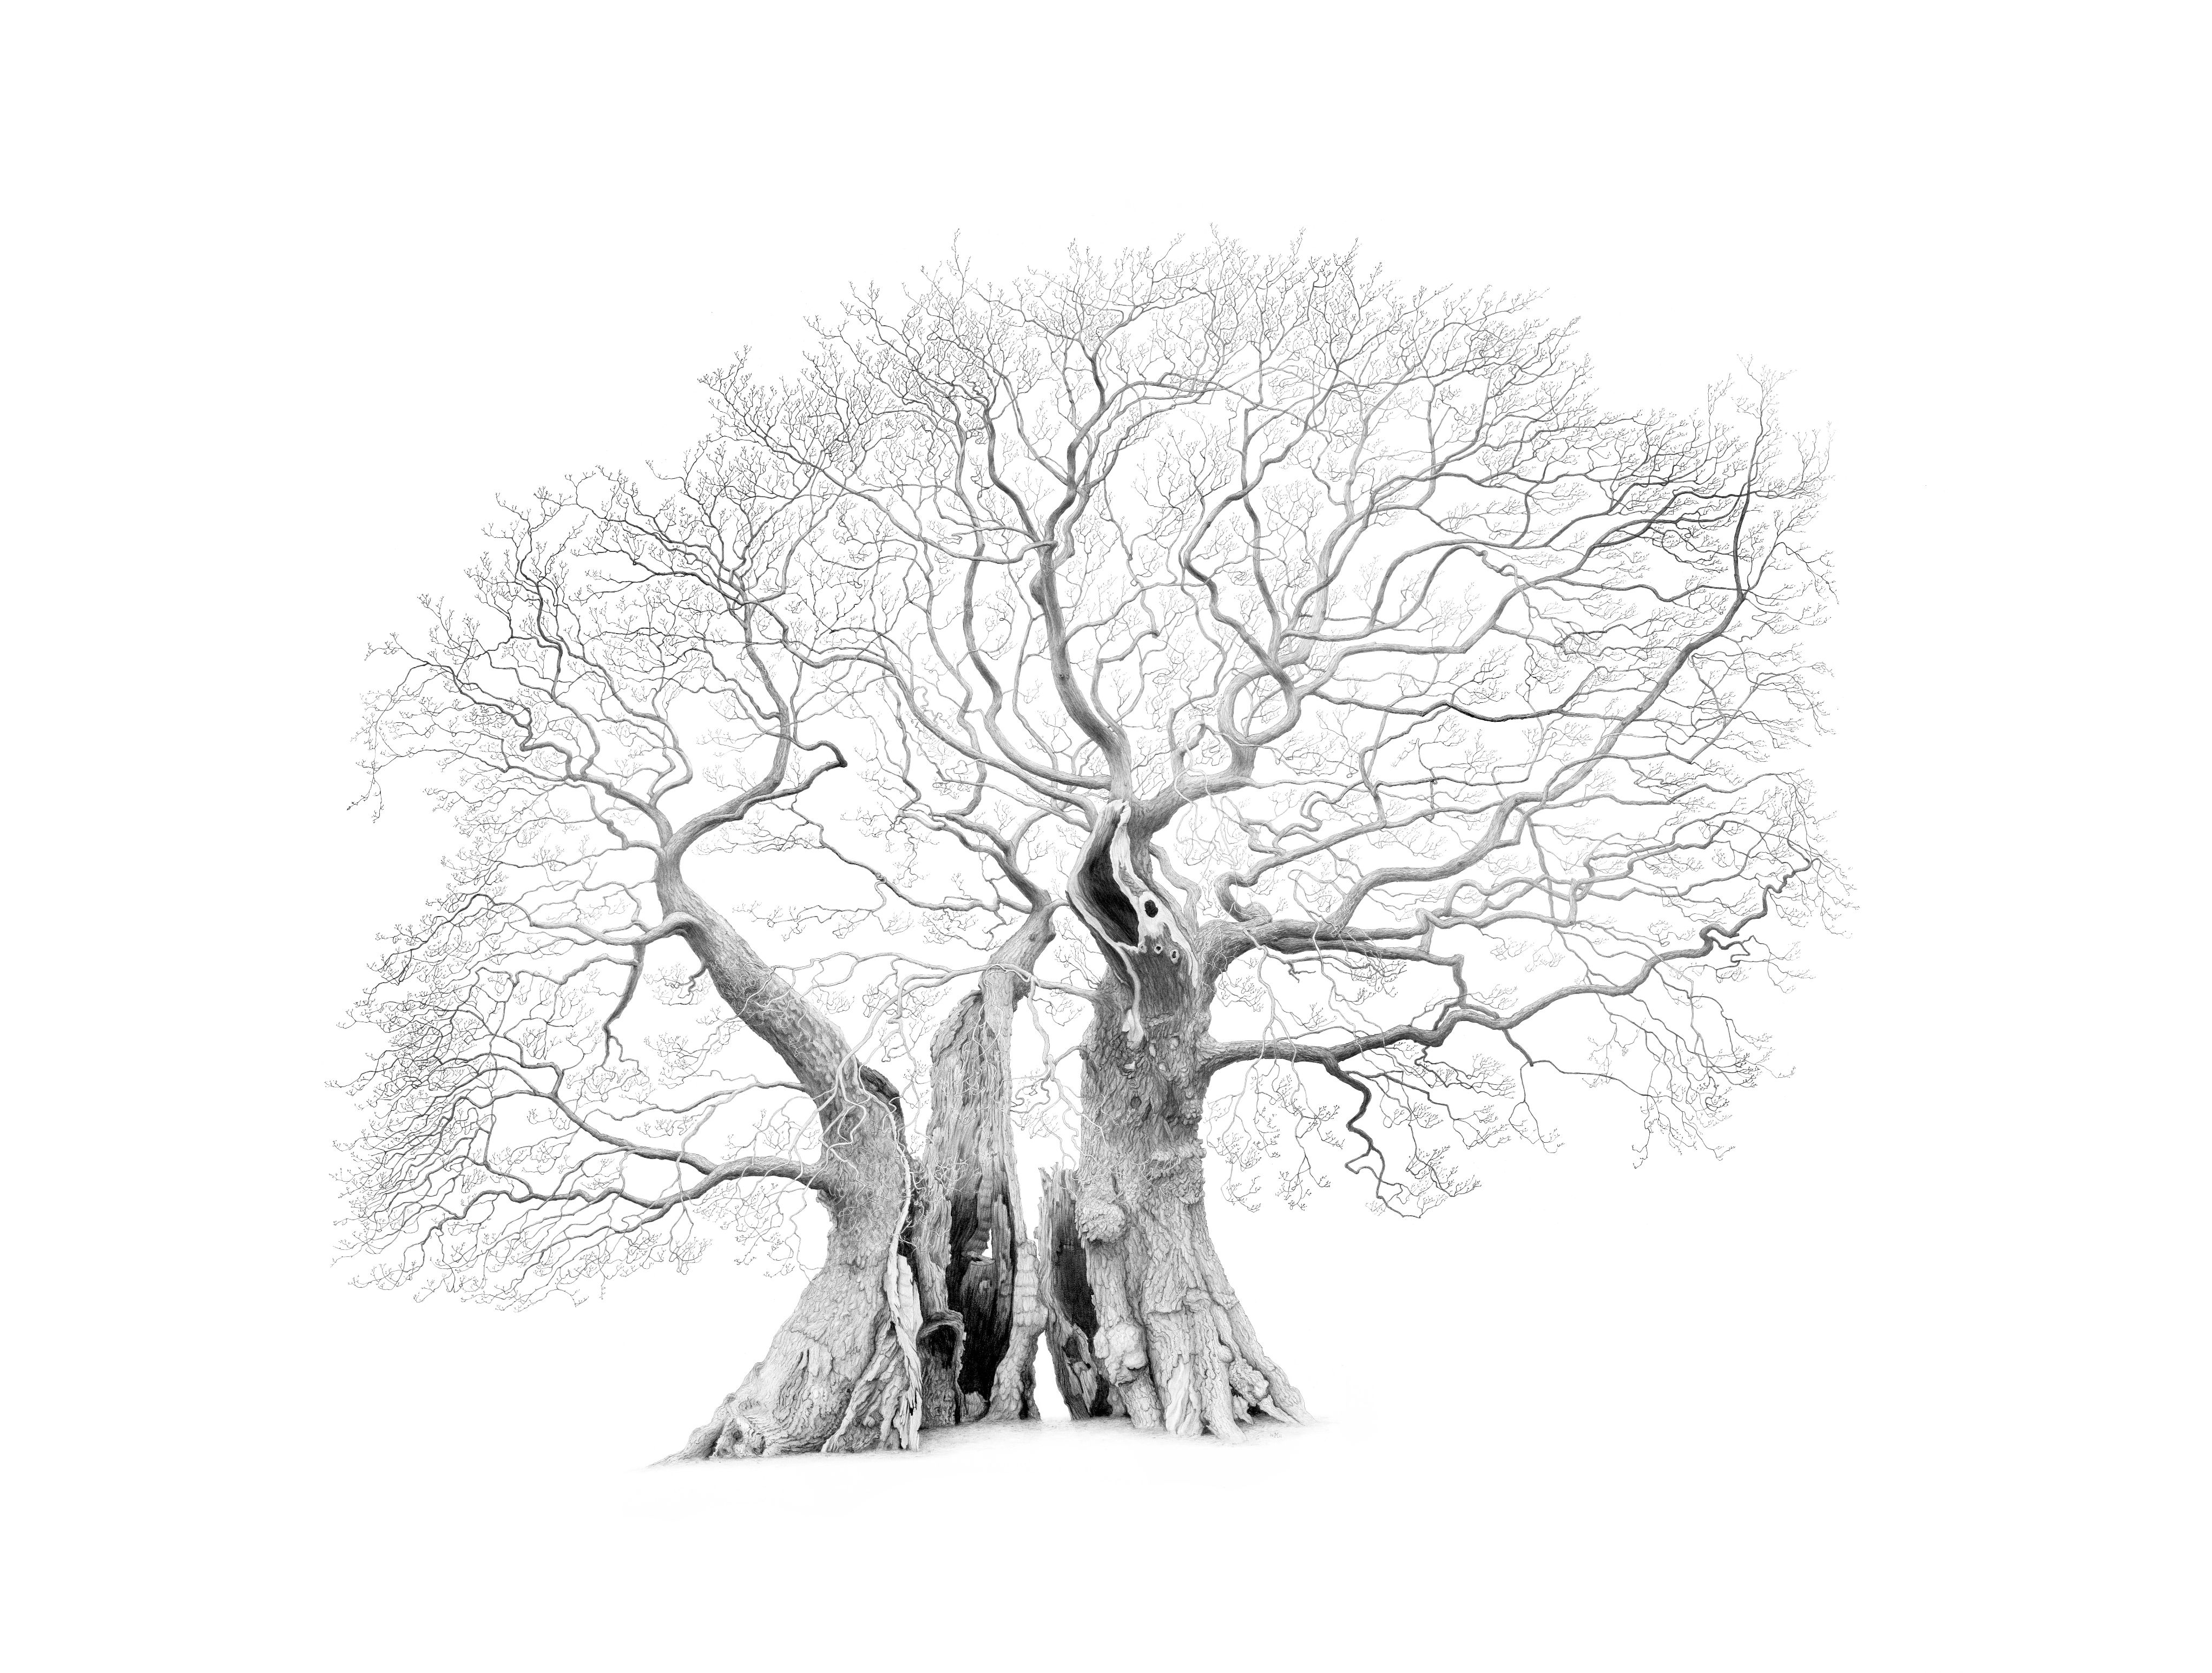 Drawing of Marton Oak in Cheshire by artist Mark Frith